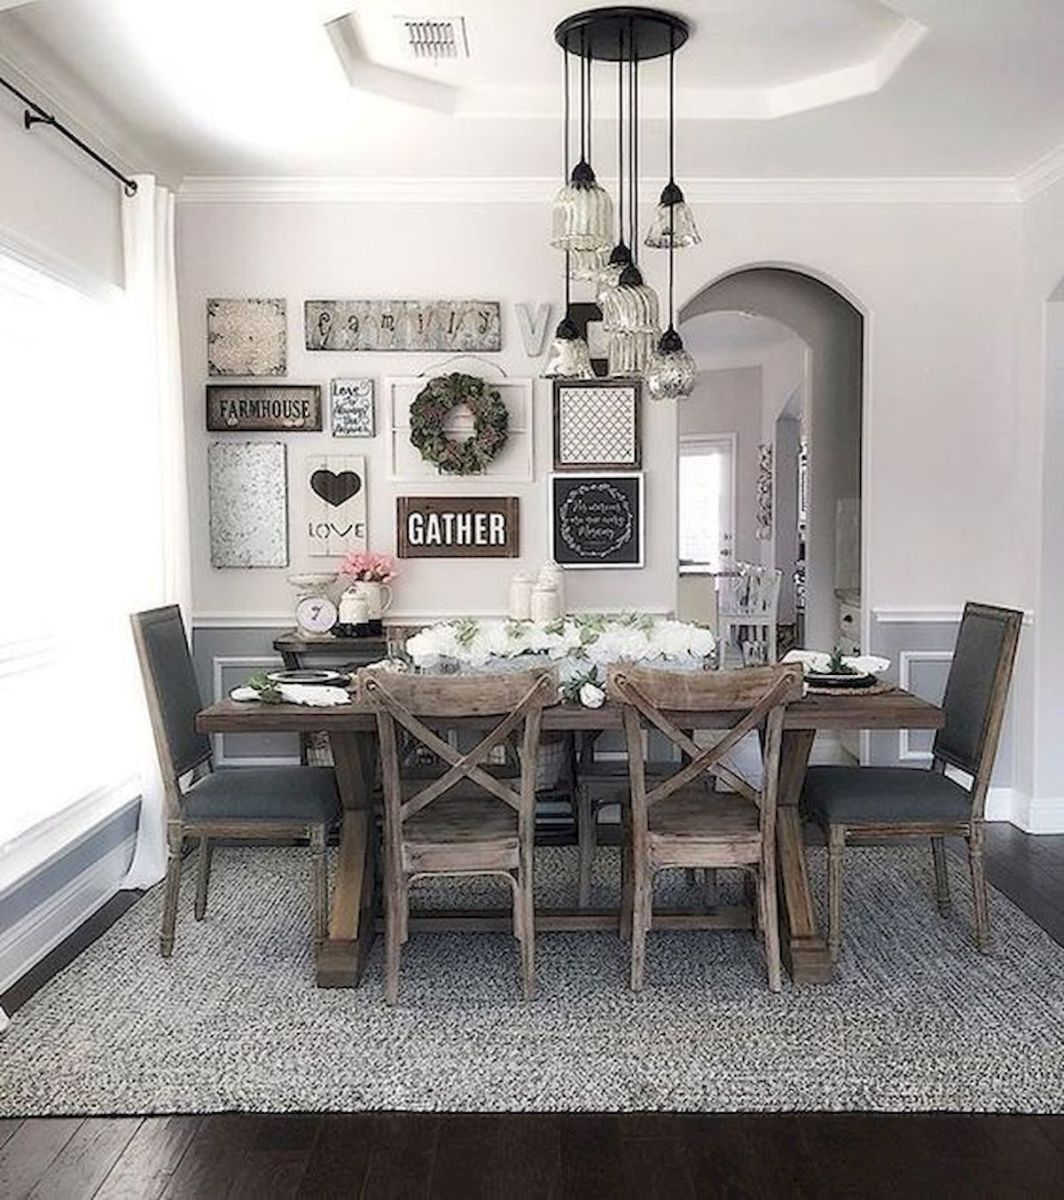 51 Farmhouse Wall Decor Ideas for Dinning Room (41)